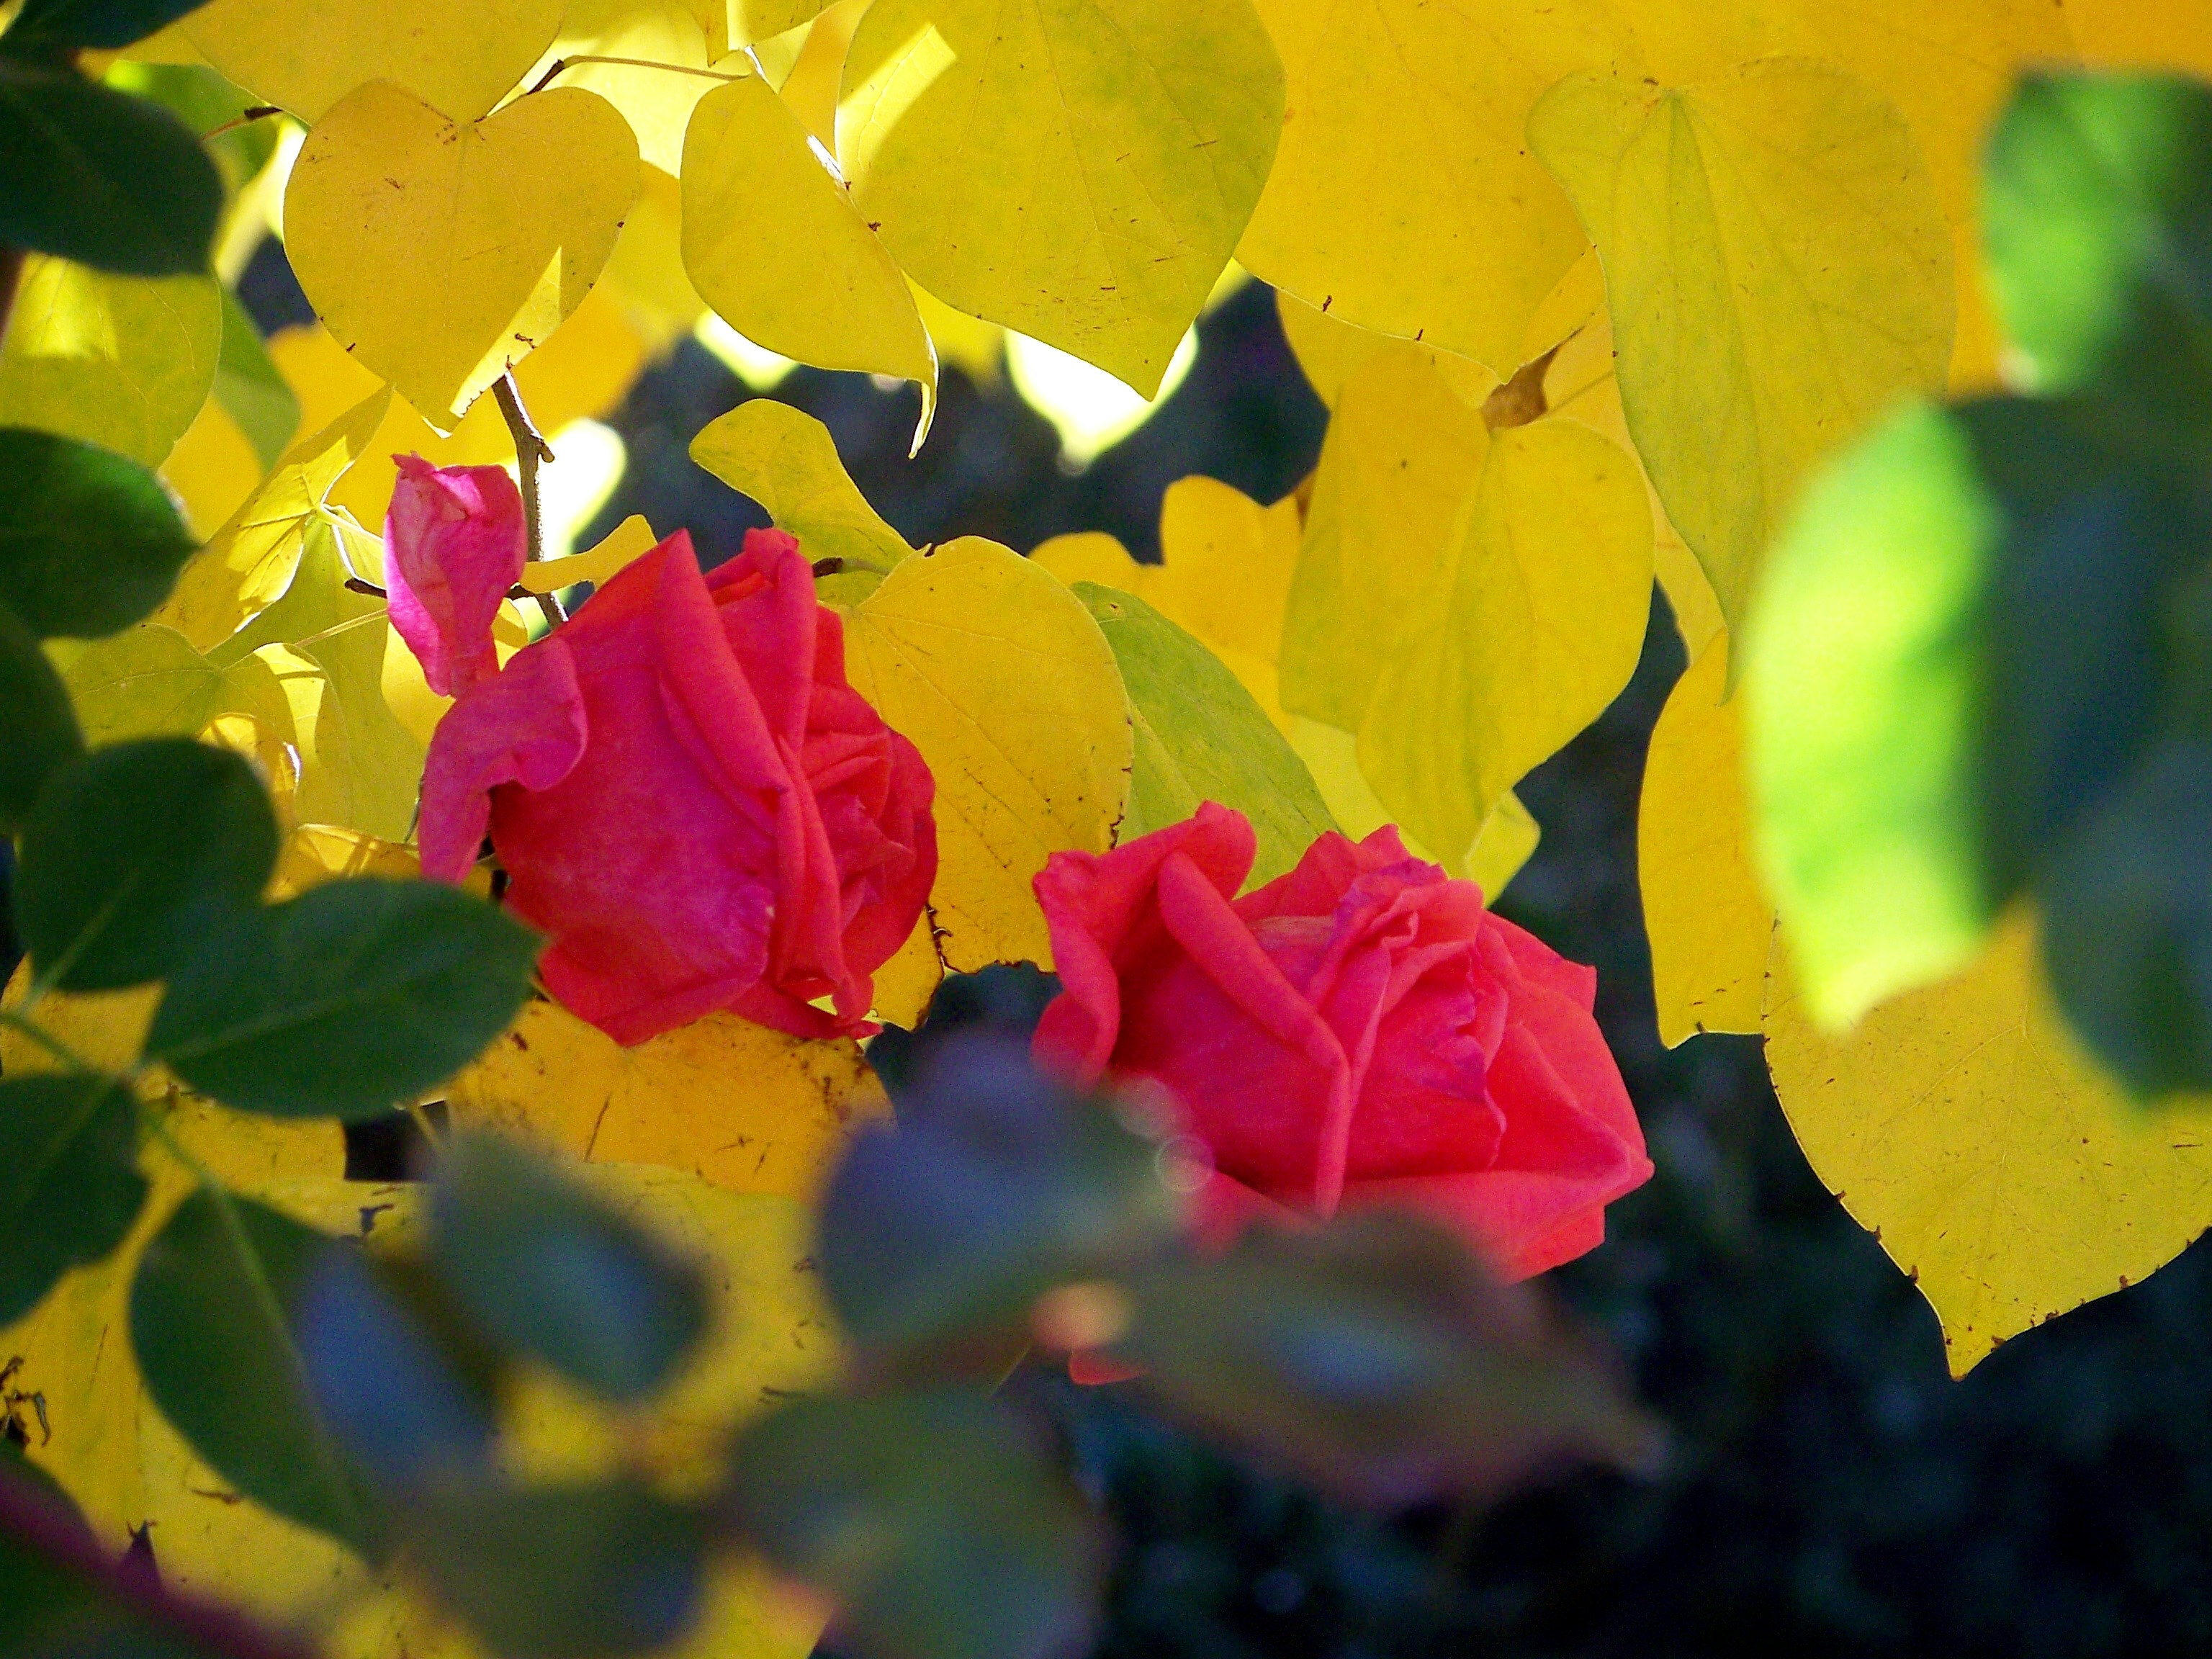 Red roses against yellow leaves